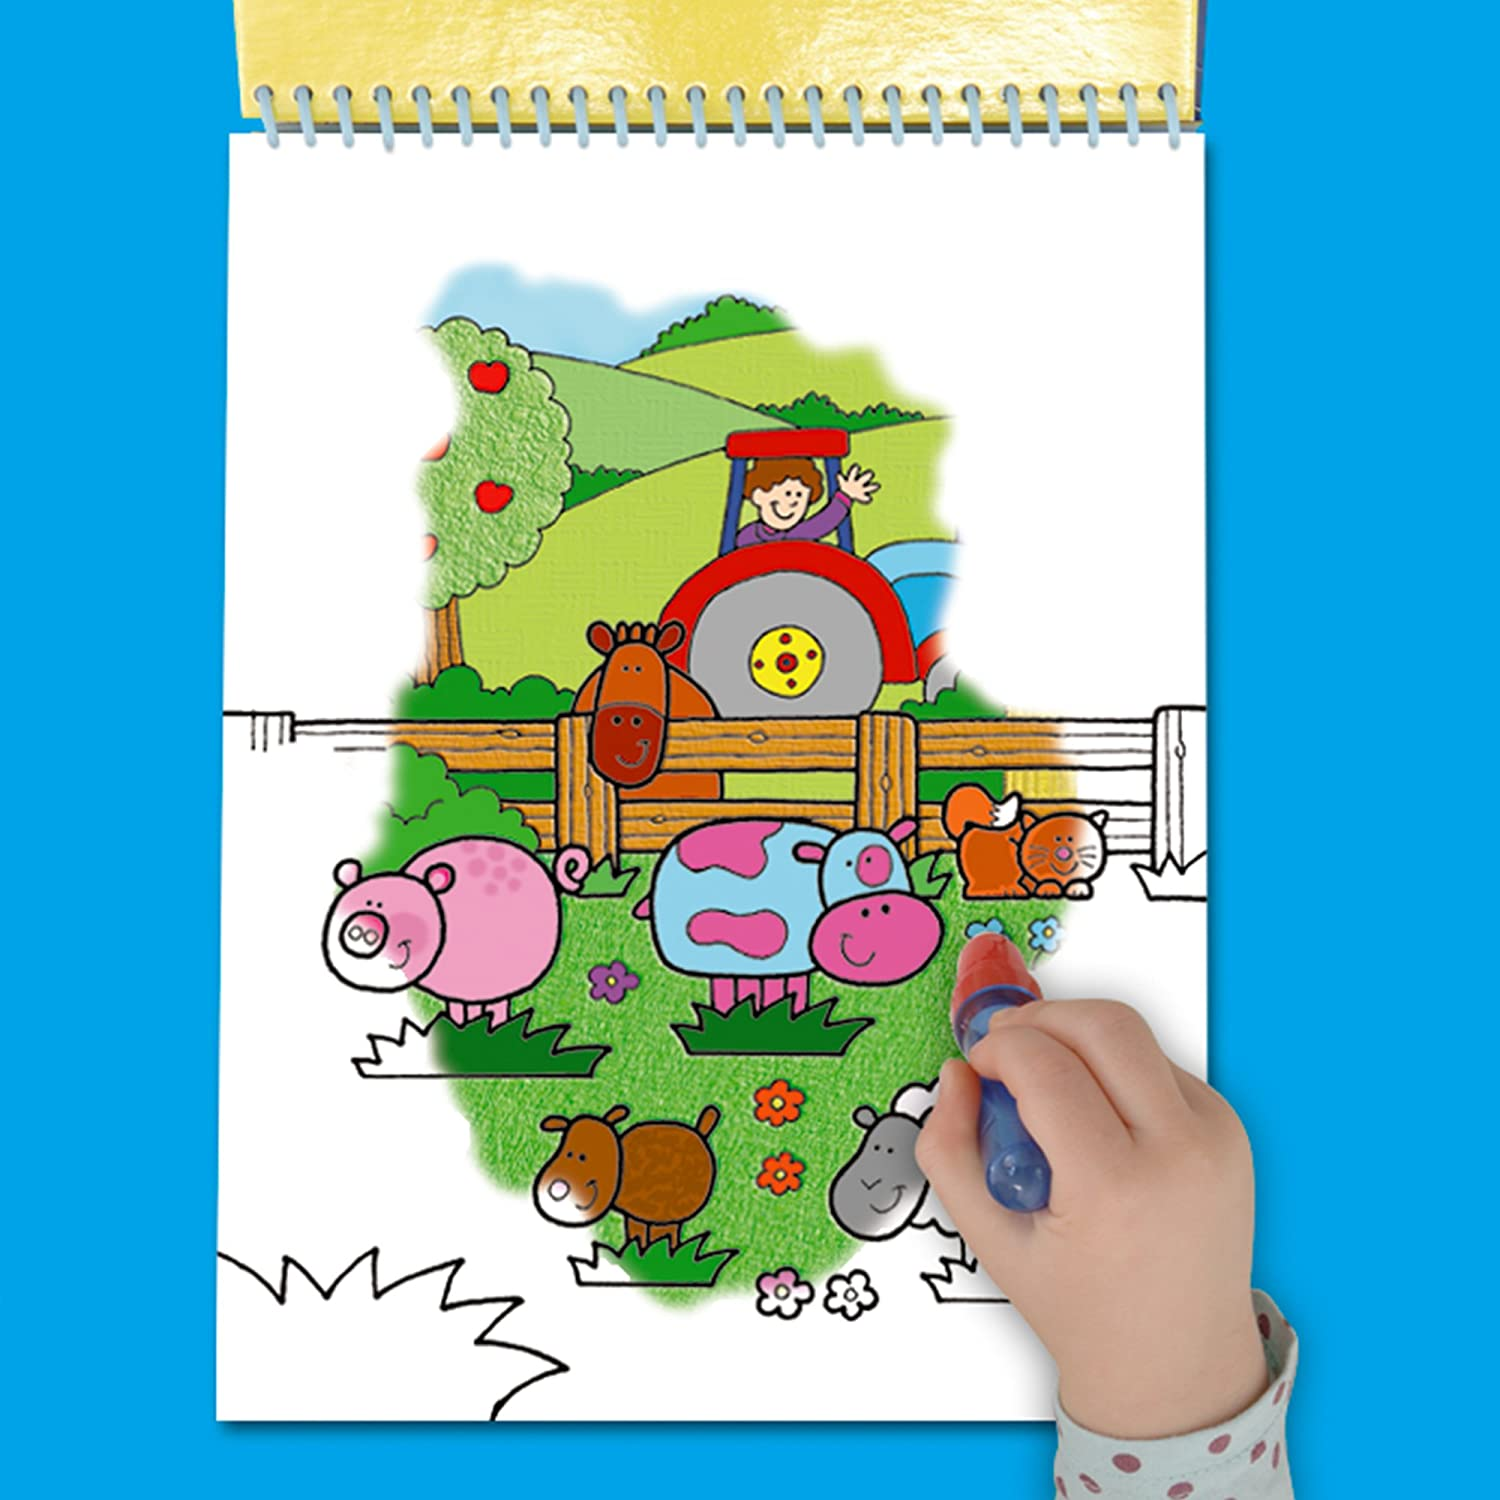 Galt Toys Water Magic Farm, Colouring Book for Children: Amazon.co ...